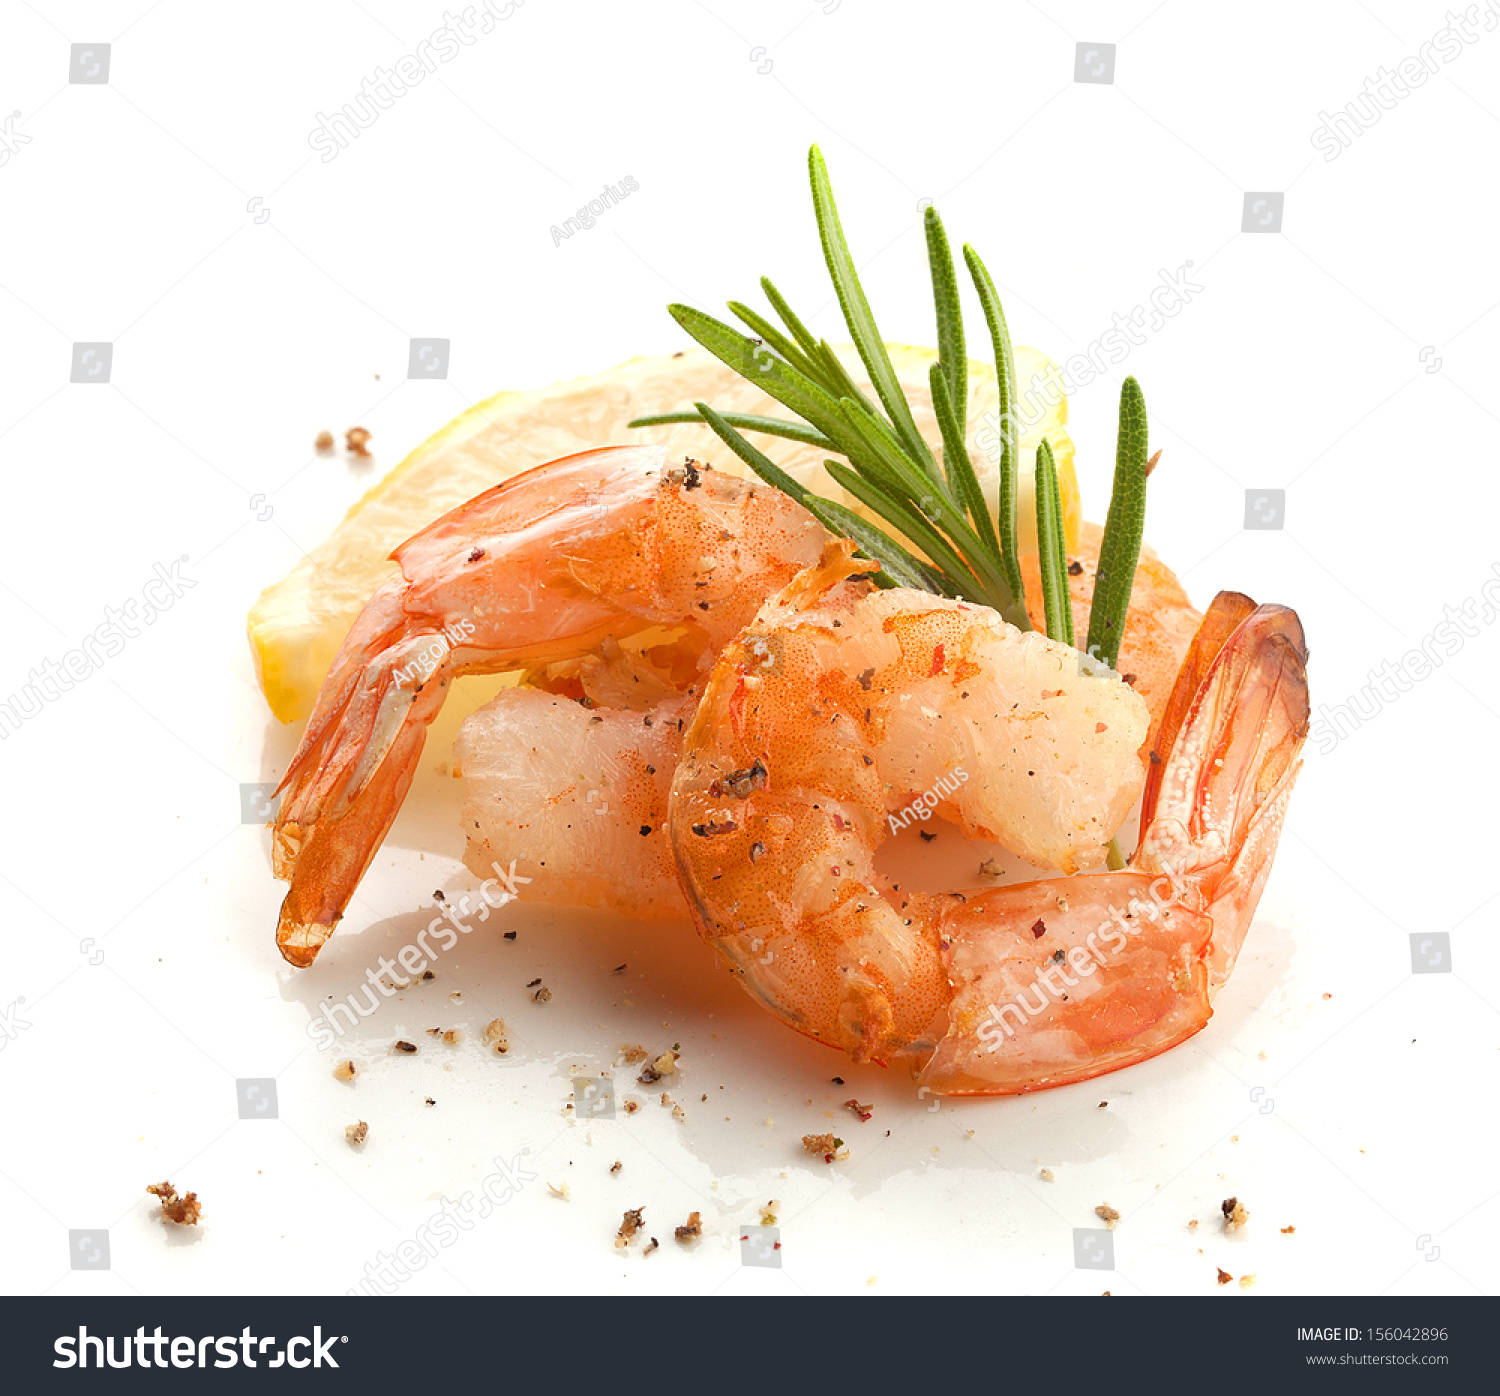 Two Roasted Shrimp'S Tails With Rosemary And Lemon Imagen de archivo ...